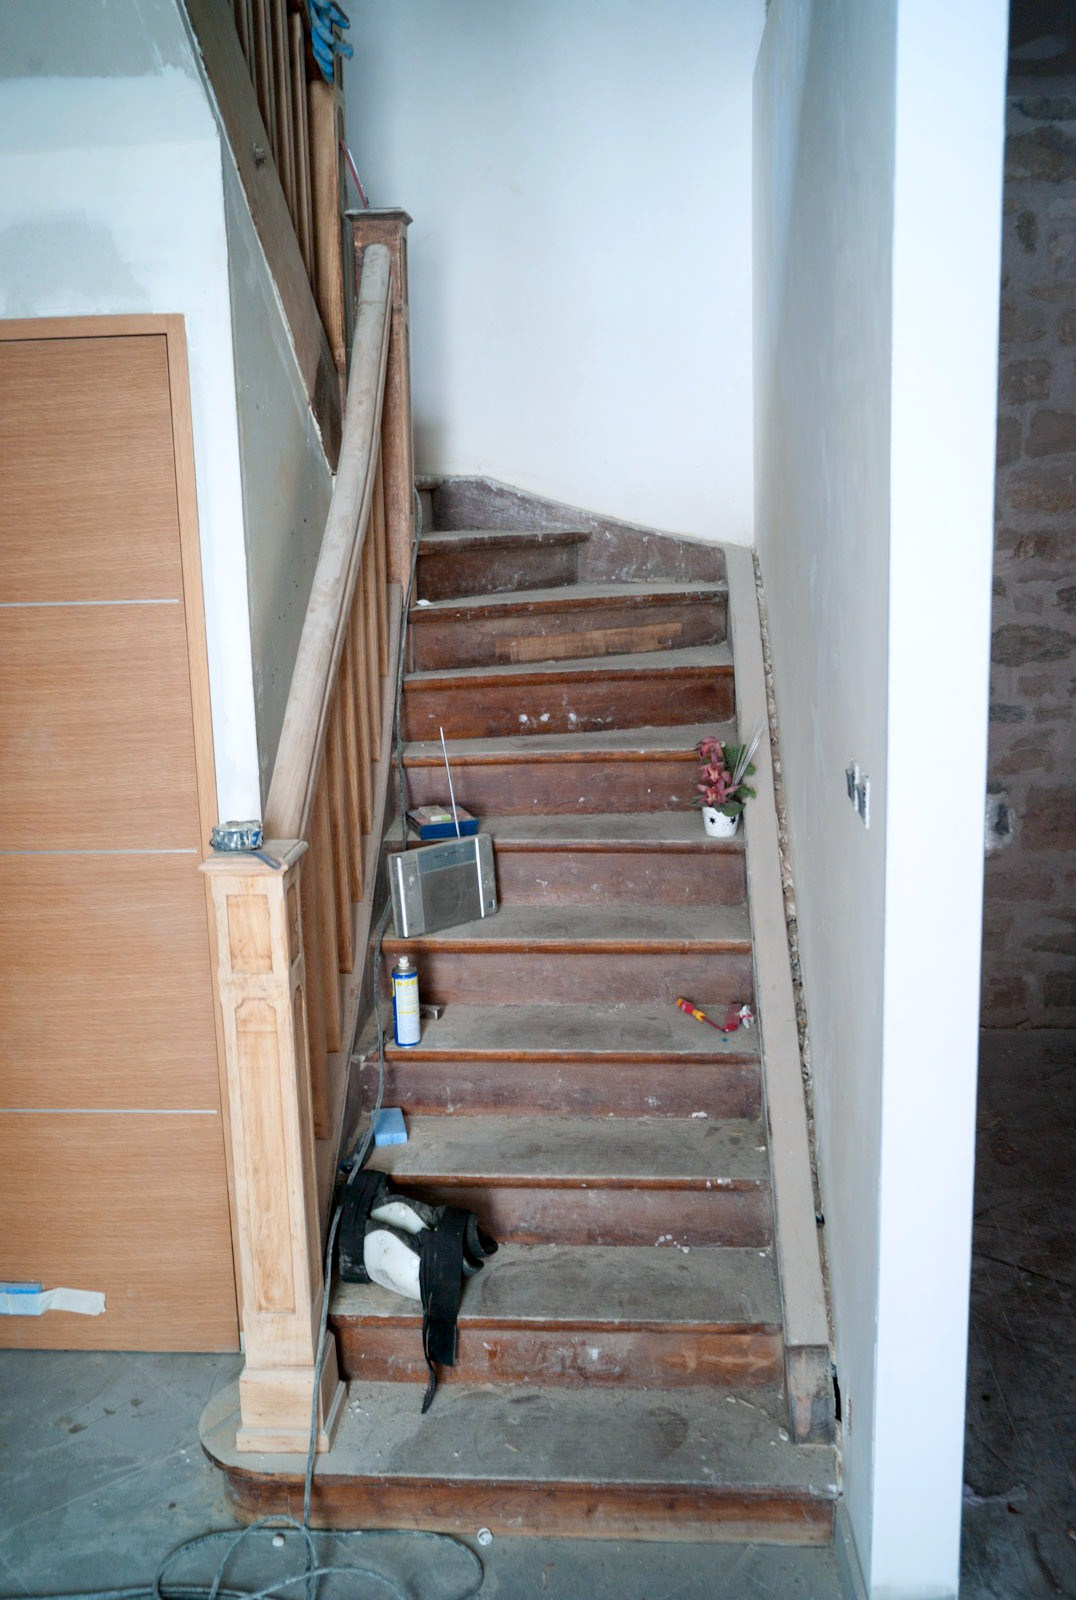 Renovation escalier bois interieur dkproject actualit s d for Renovation escalier bois interieur